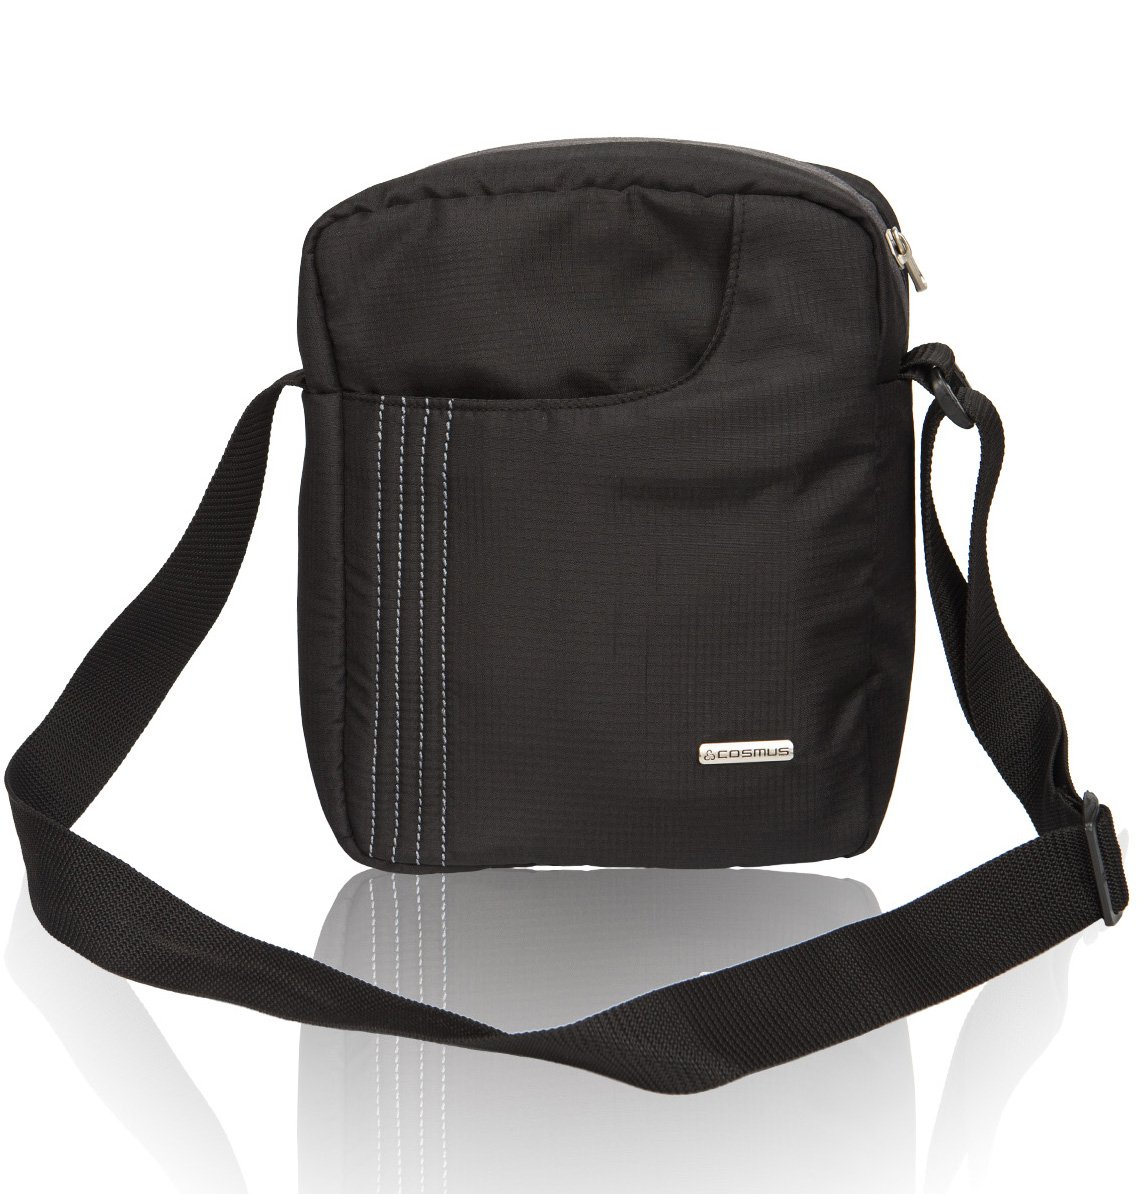 Cosmus Stitchwell 6 Litres Black Sling Bag: Amazon.in: Bags ...